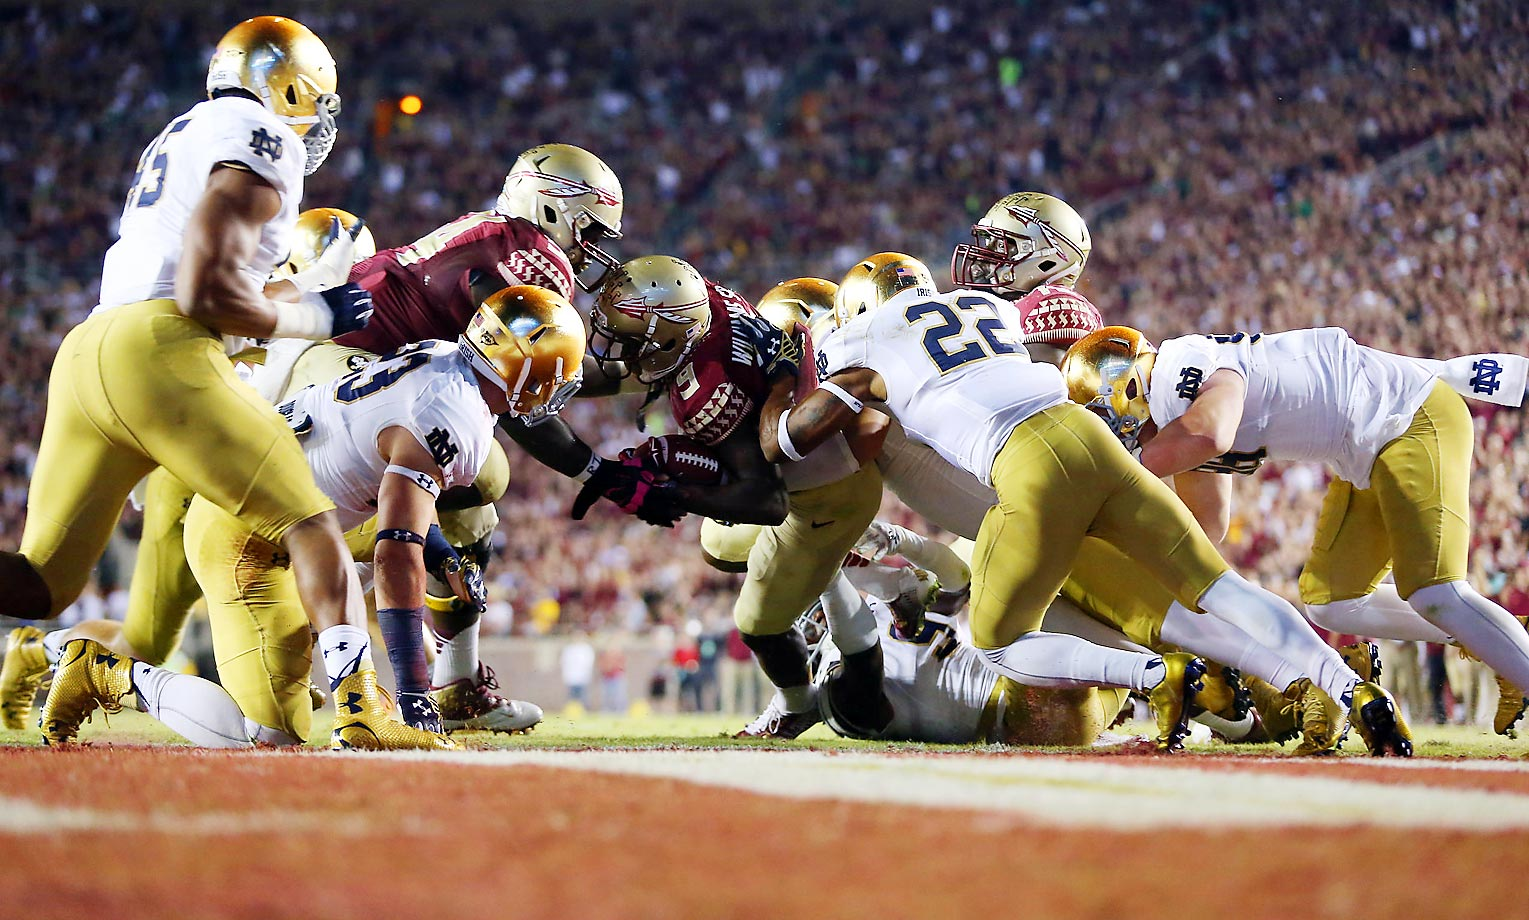 FSU's Karlos Williams goes in for a touchdown against Notre Dame.